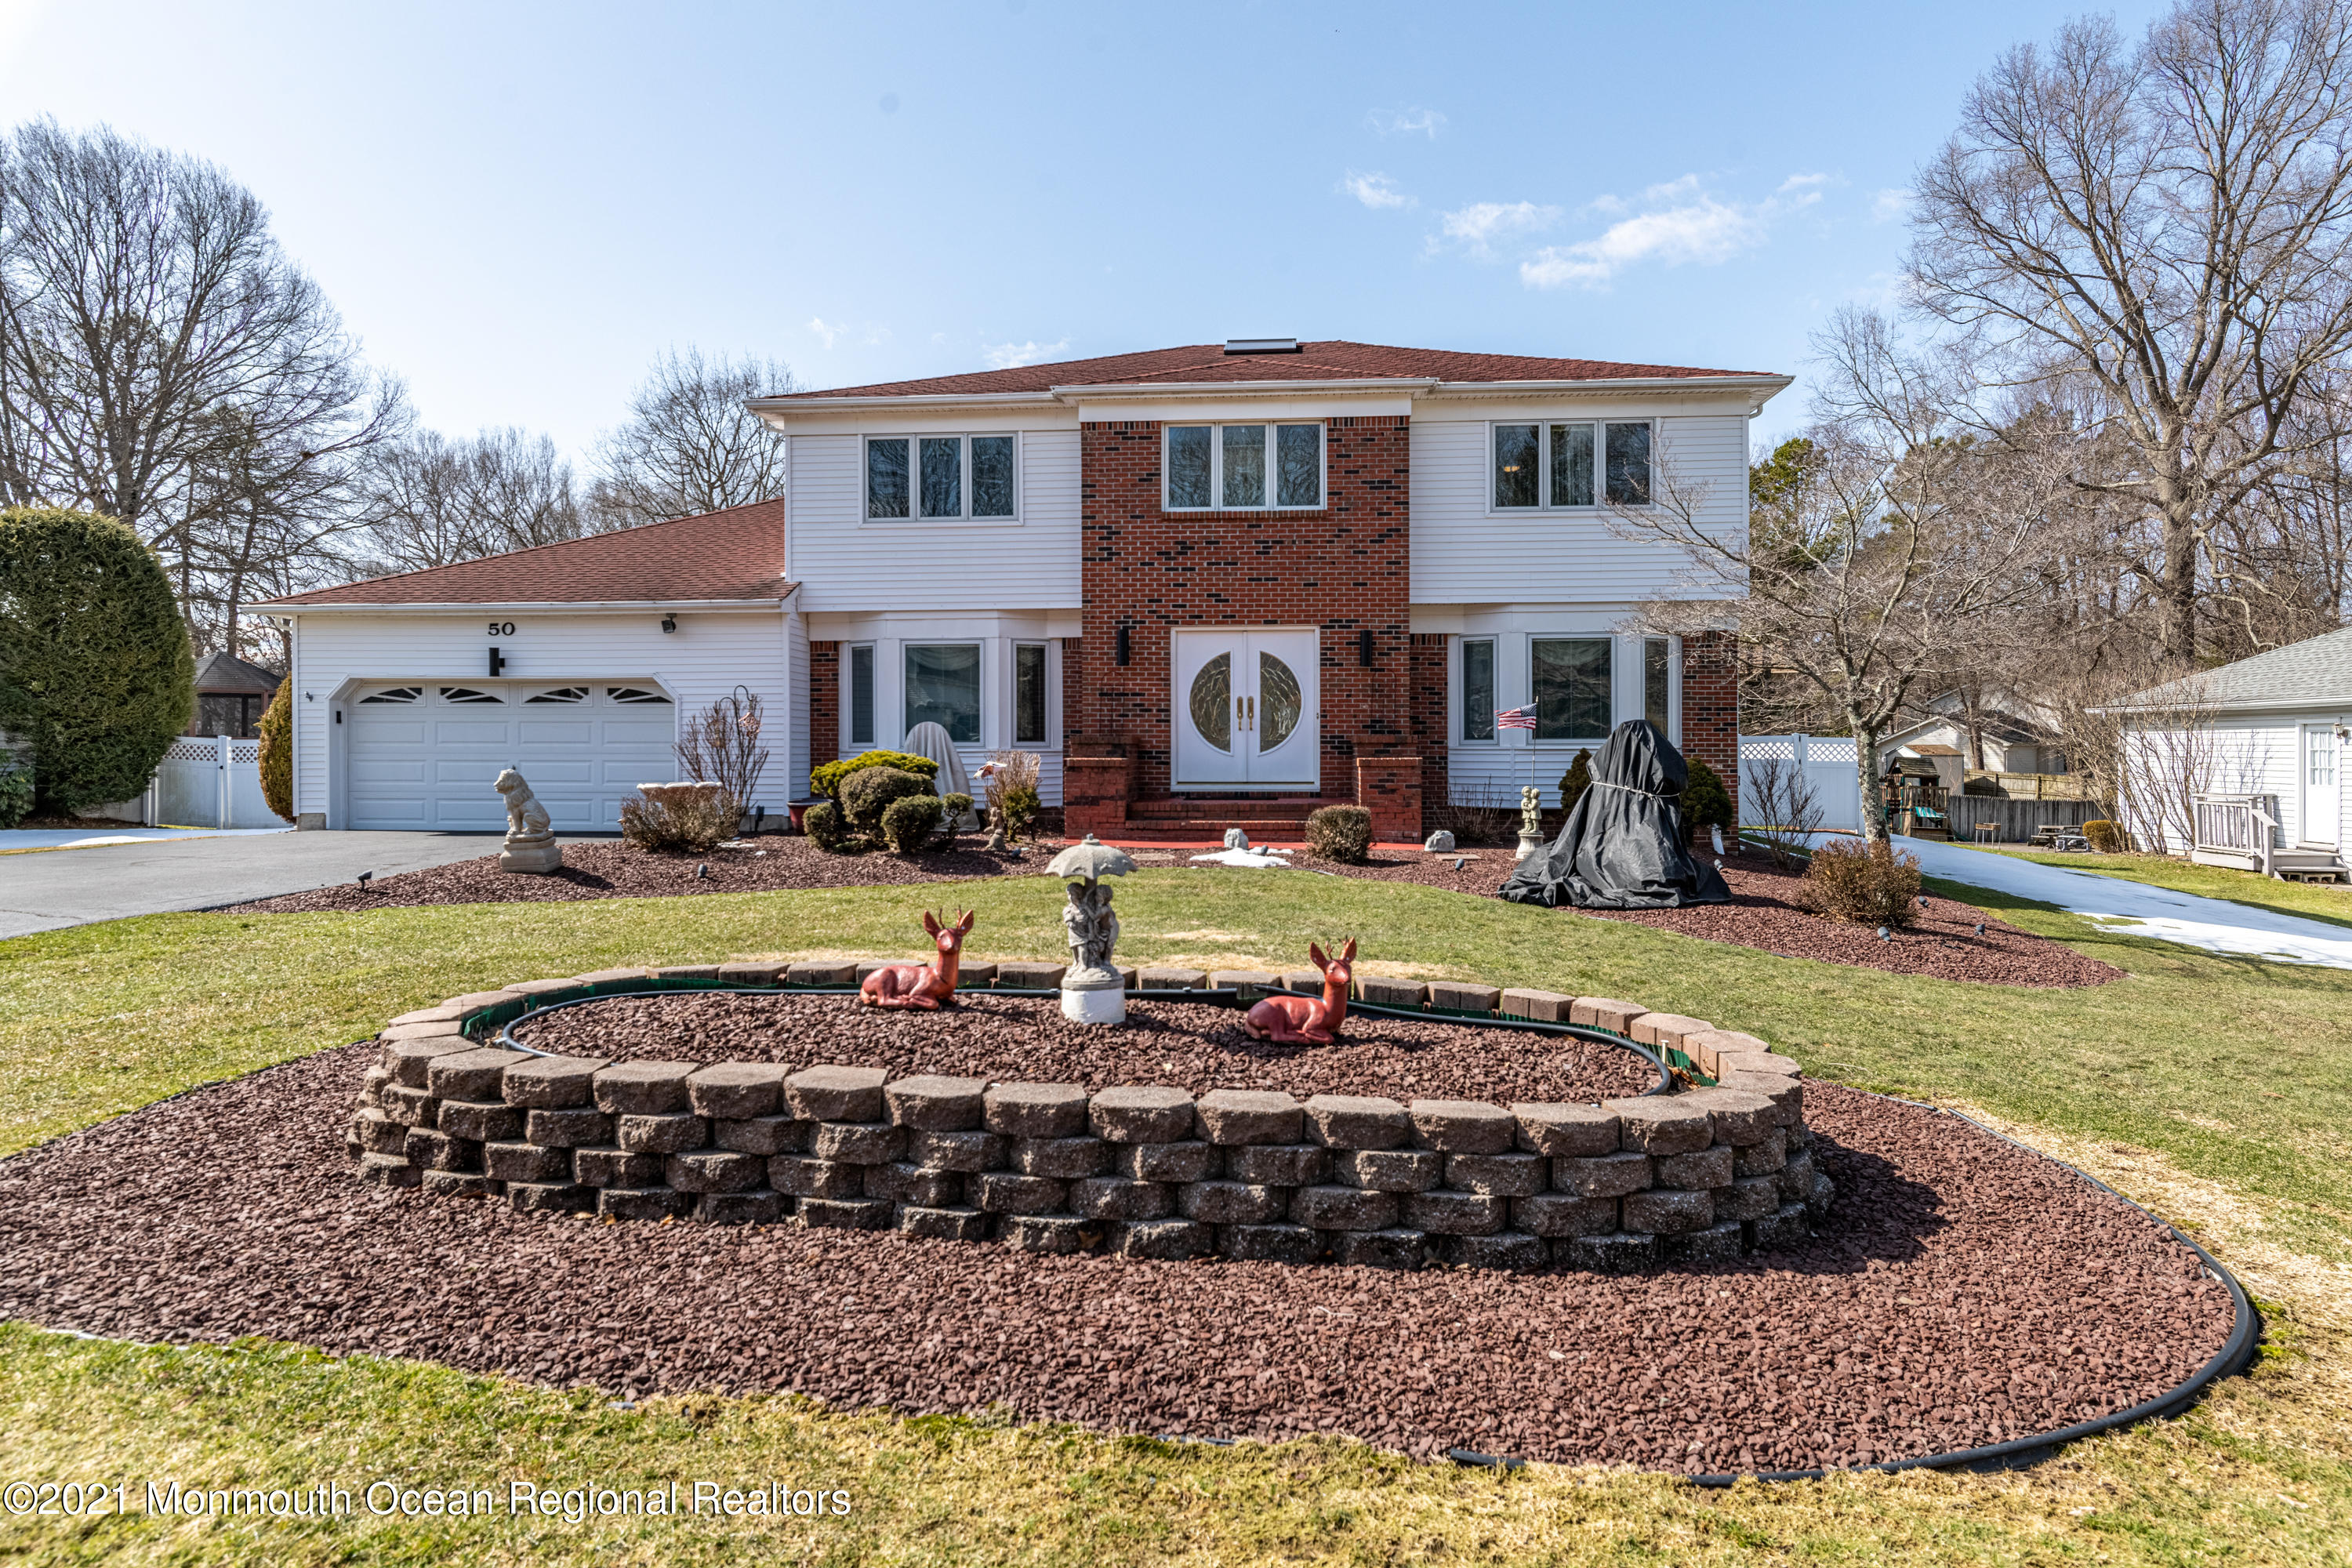 50 Bonnie Drive, Manalapan, New Jersey 07726, 5 Bedrooms Bedrooms, ,3 BathroomsBathrooms,Single Family,For Sale,50 Bonnie Drive,2,22106676